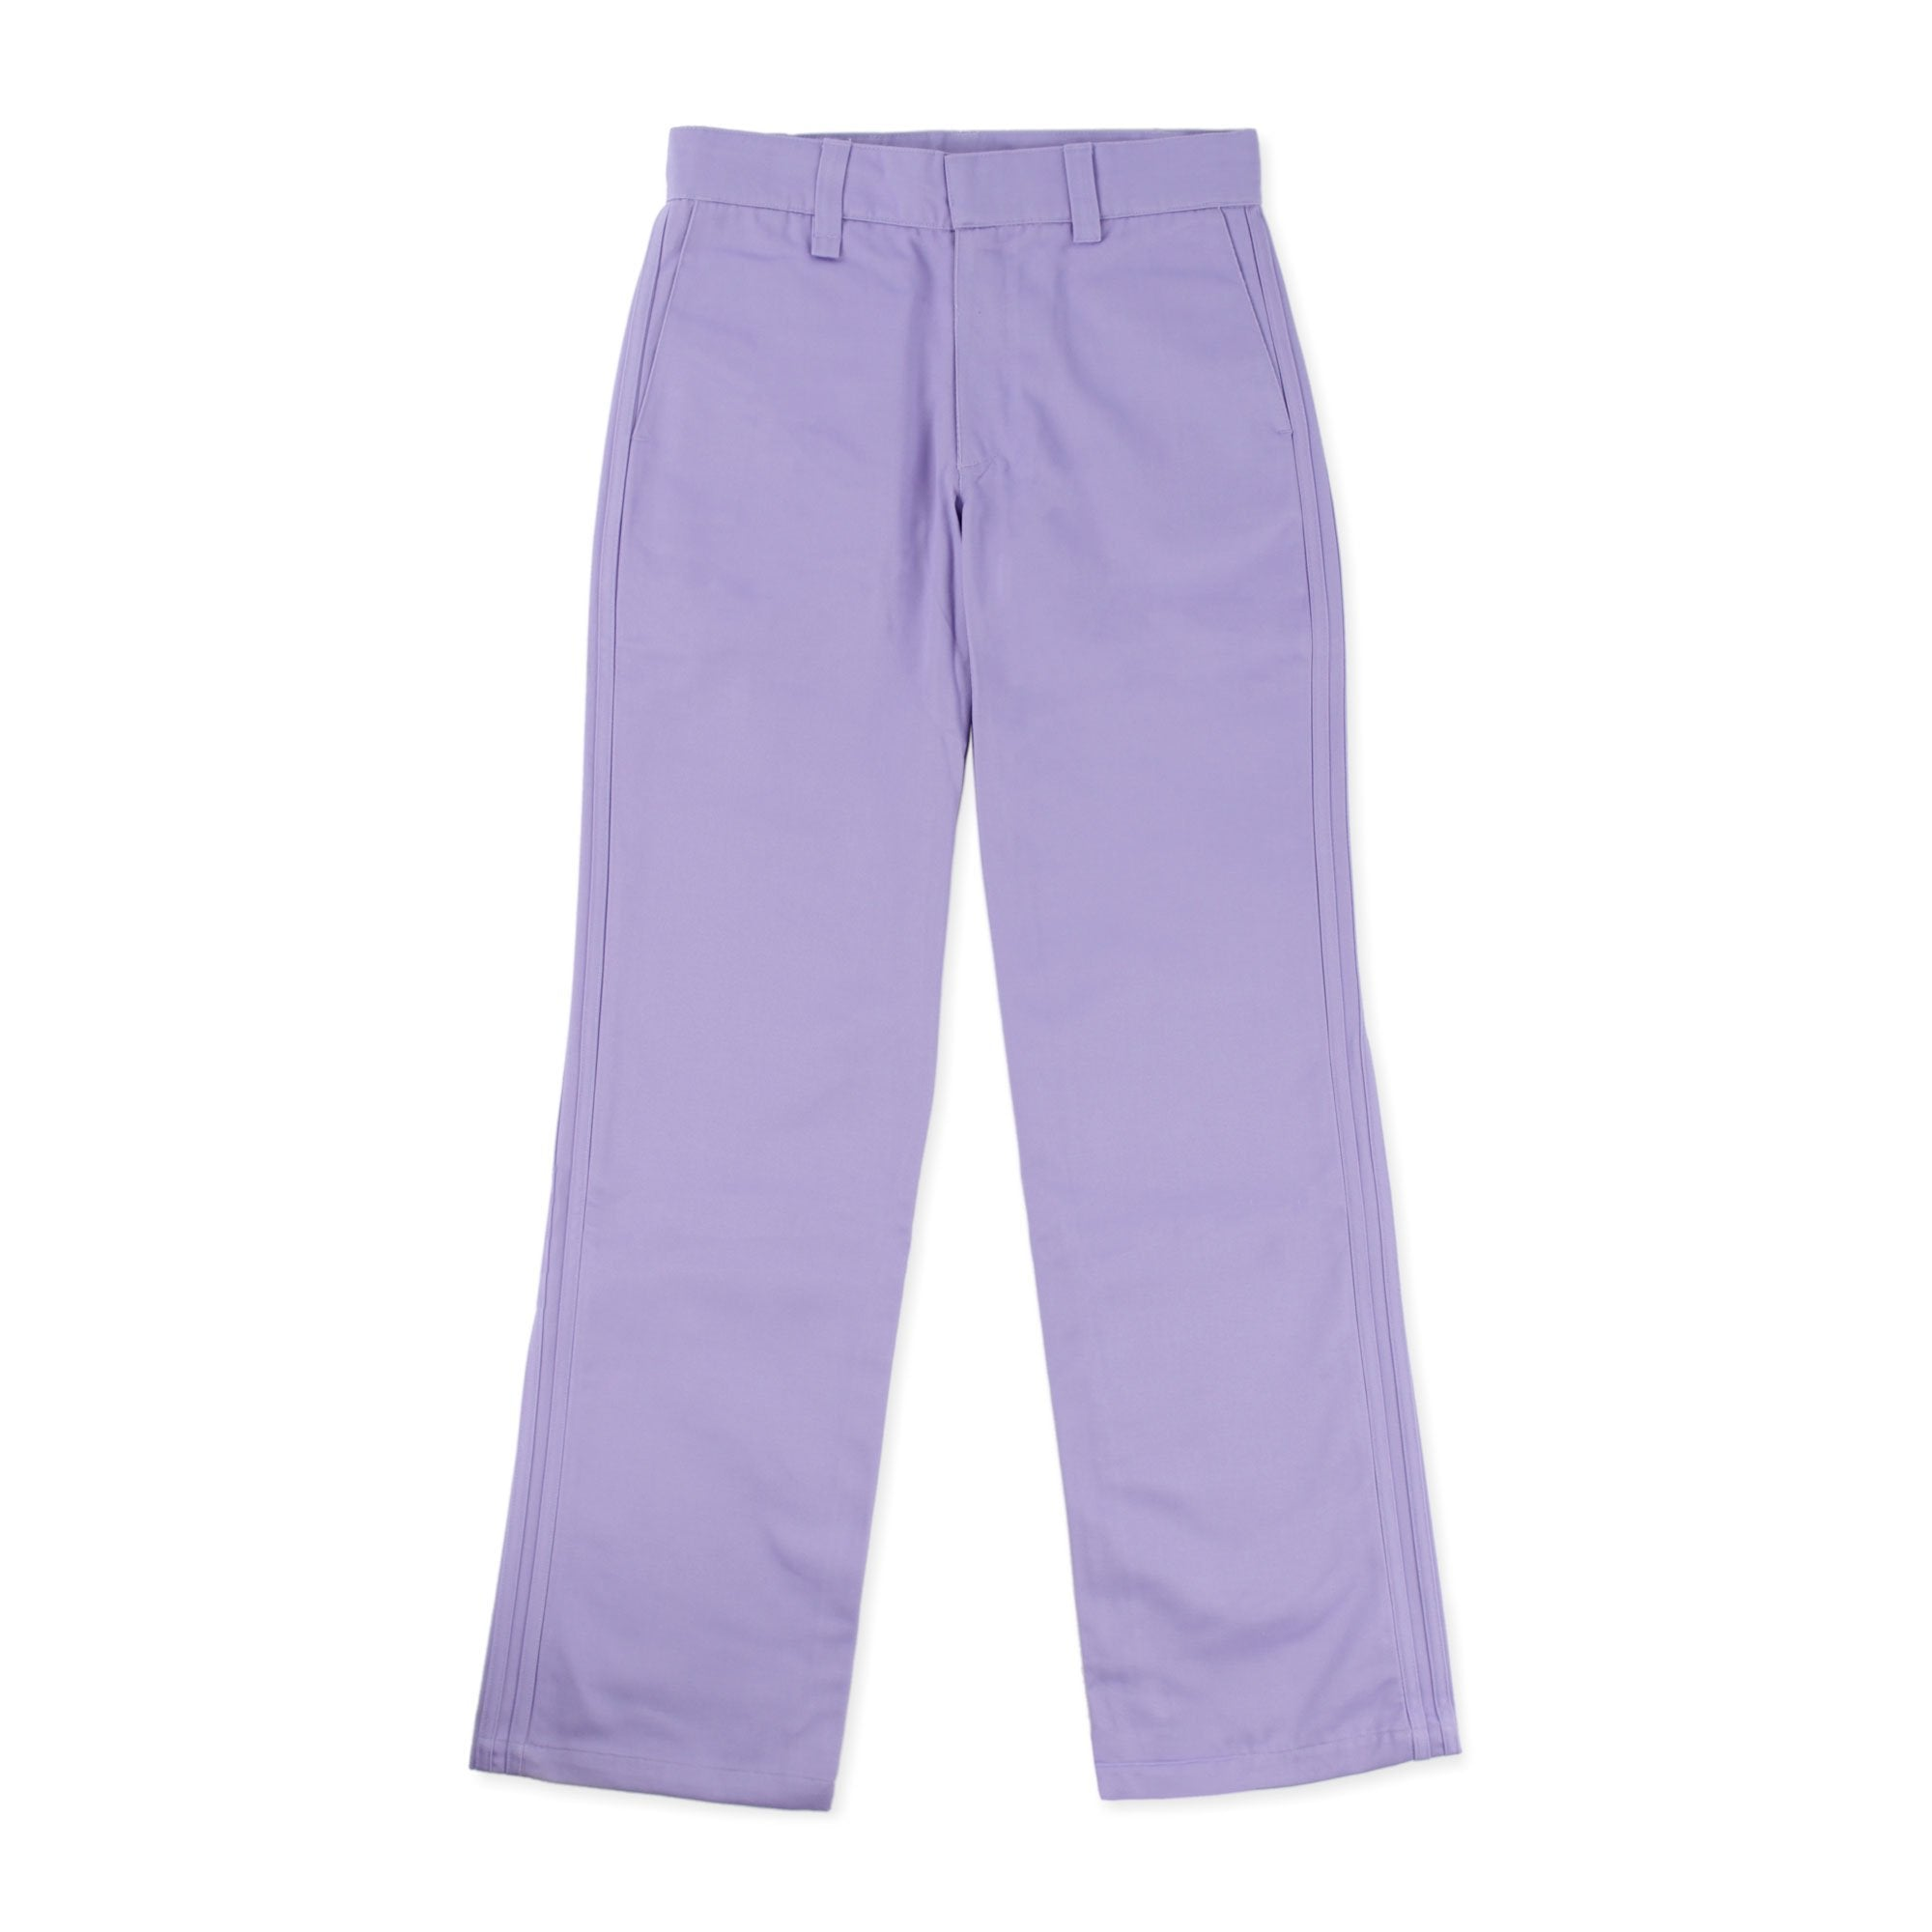 Adidas Nora Pants Product Photo #1